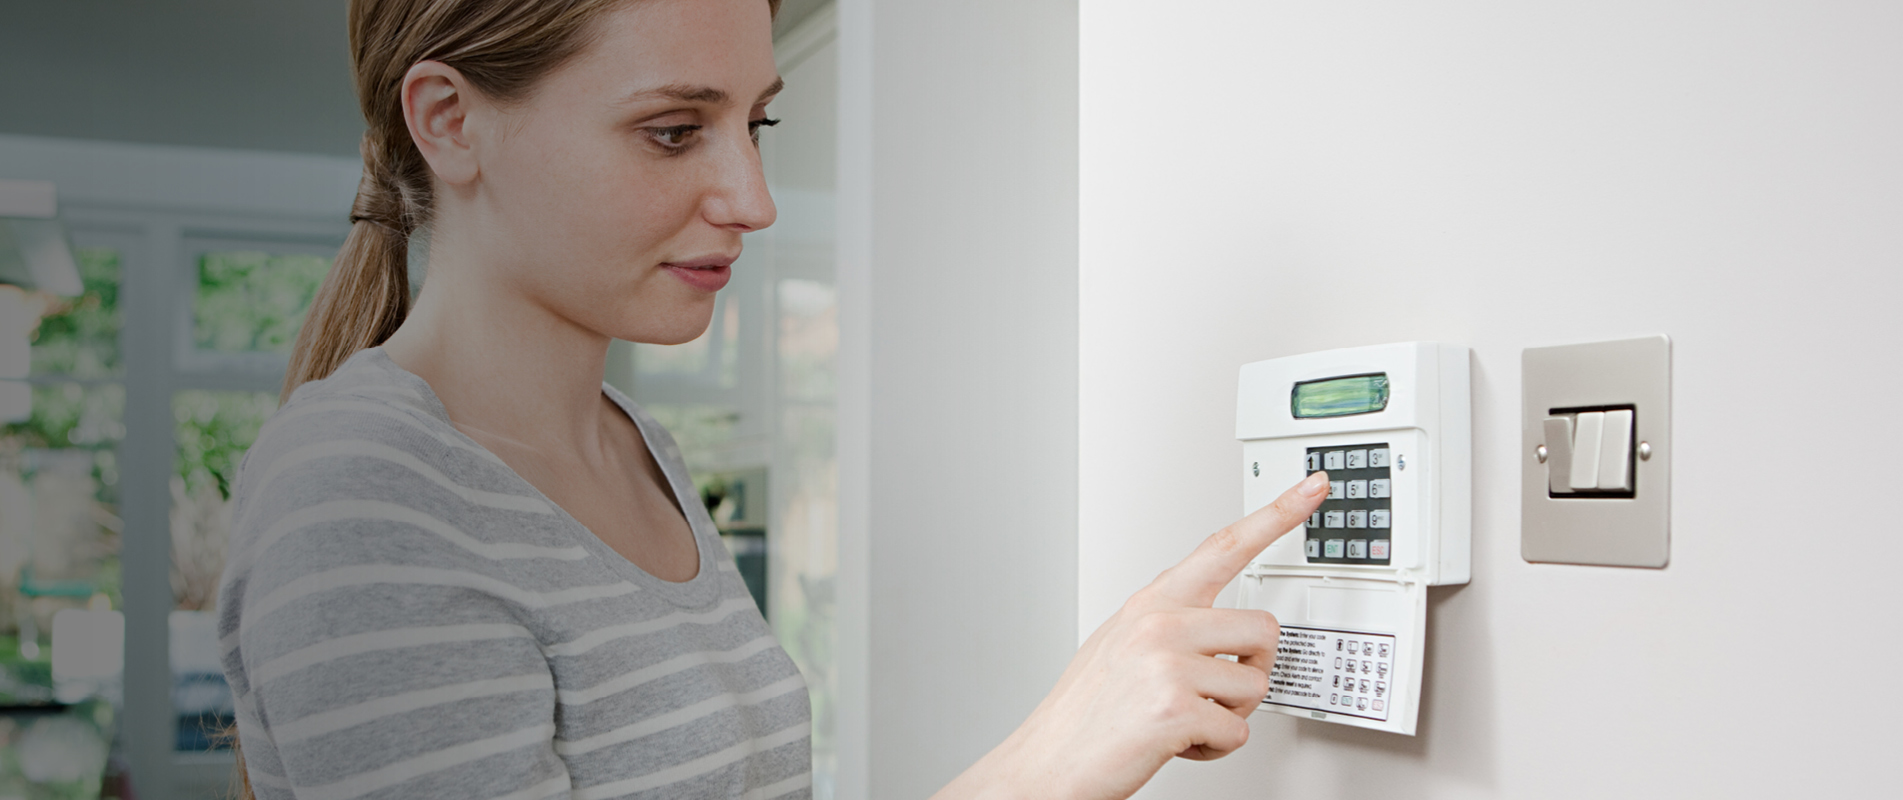 Blonde lady setting home security alarm using keypad